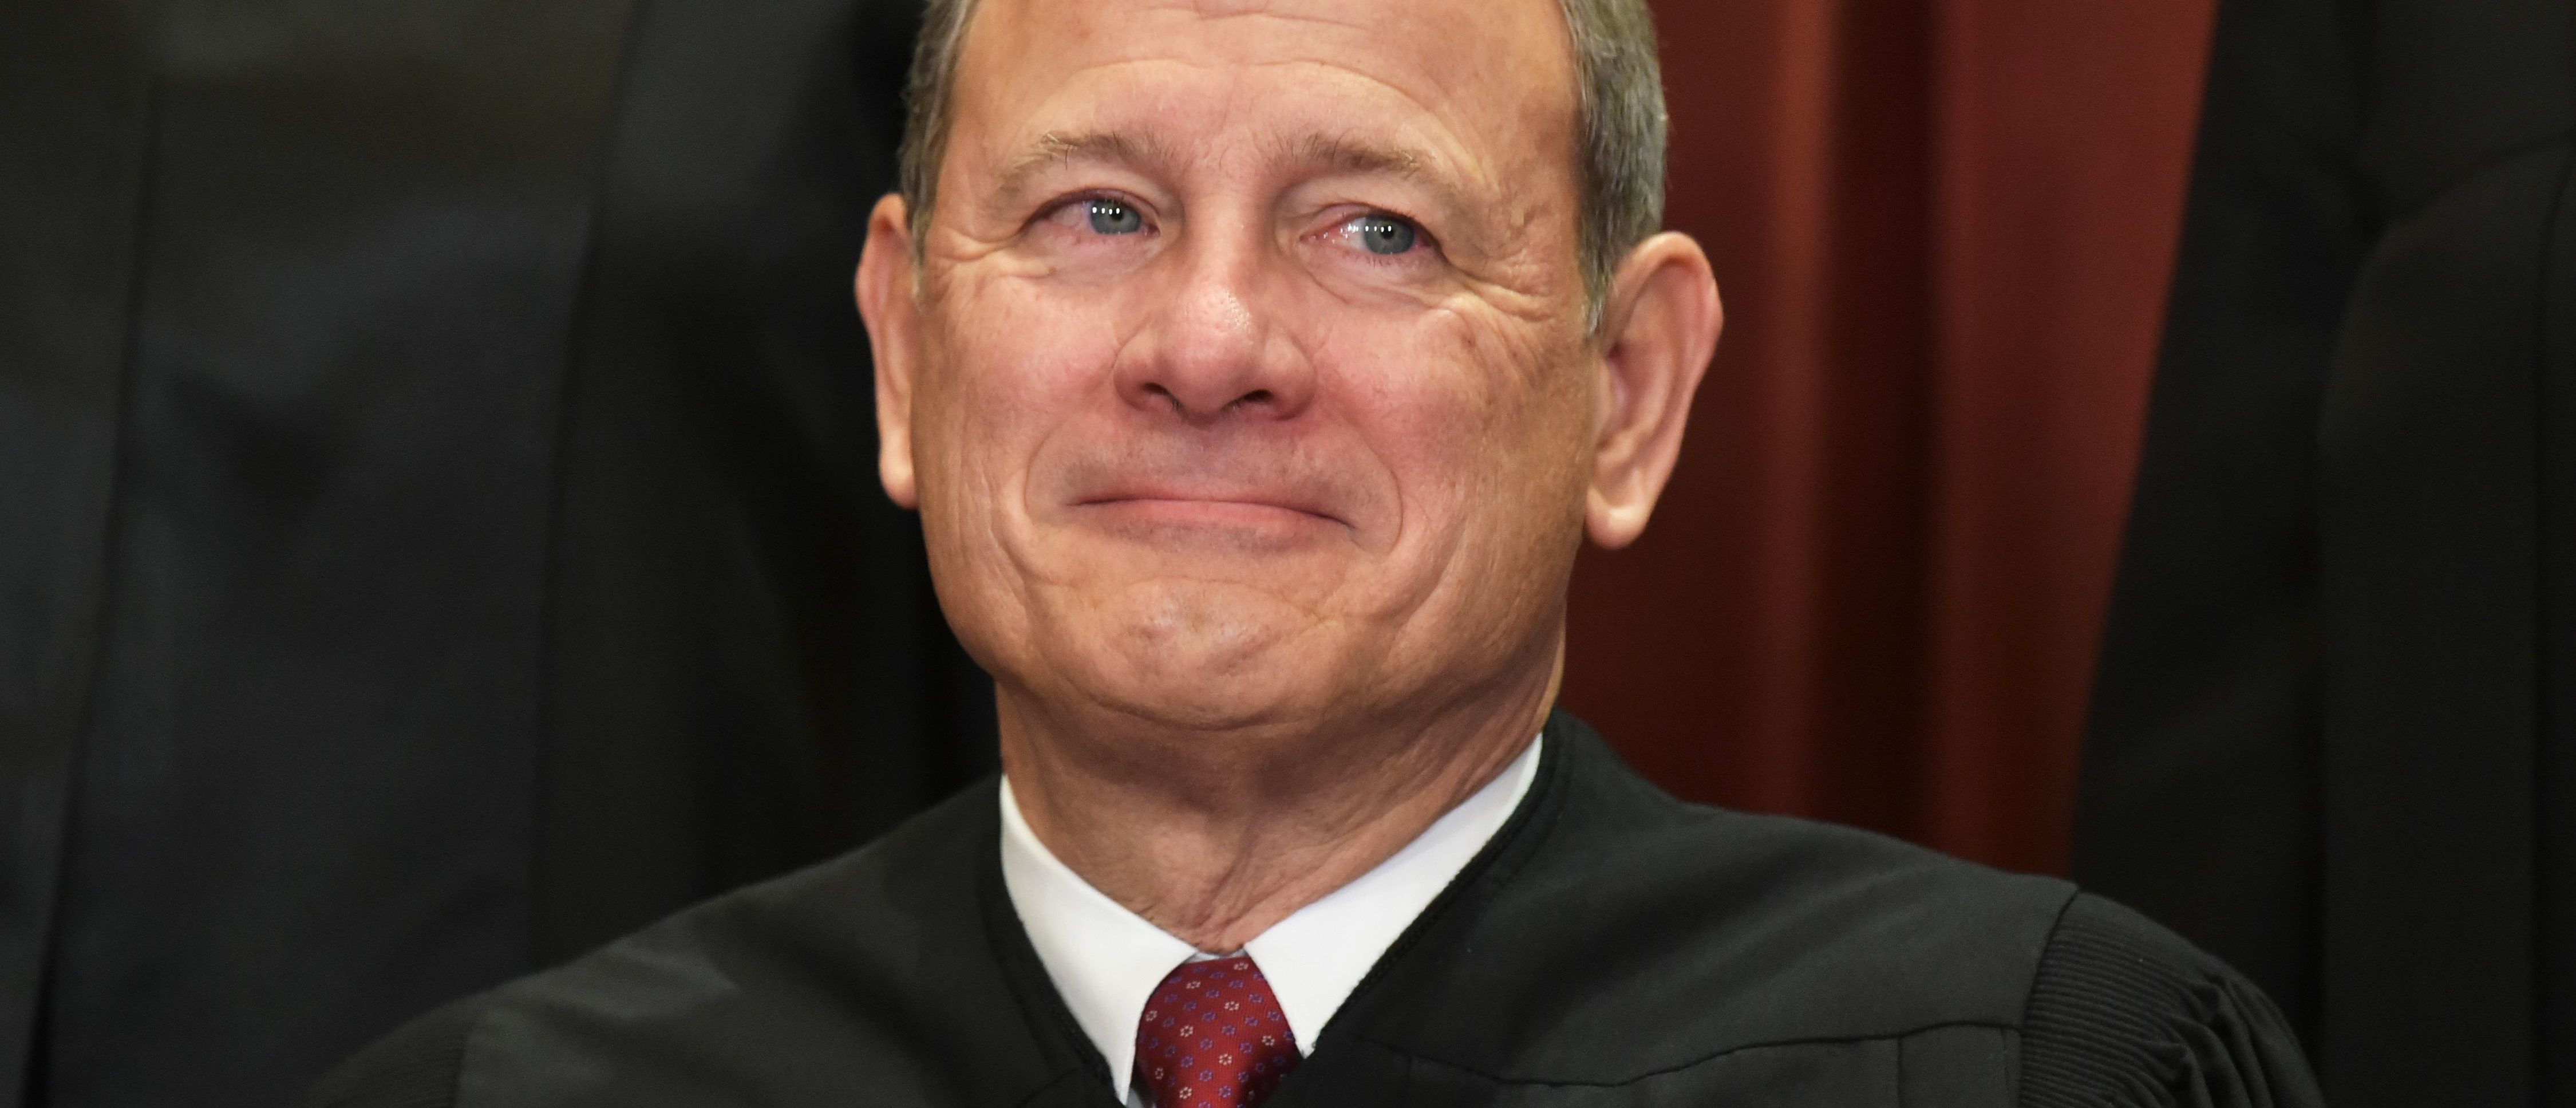 Chief Justice Roberts Halts Subpoena For President Trump's Accounting Records — For Now - The Daily Caller